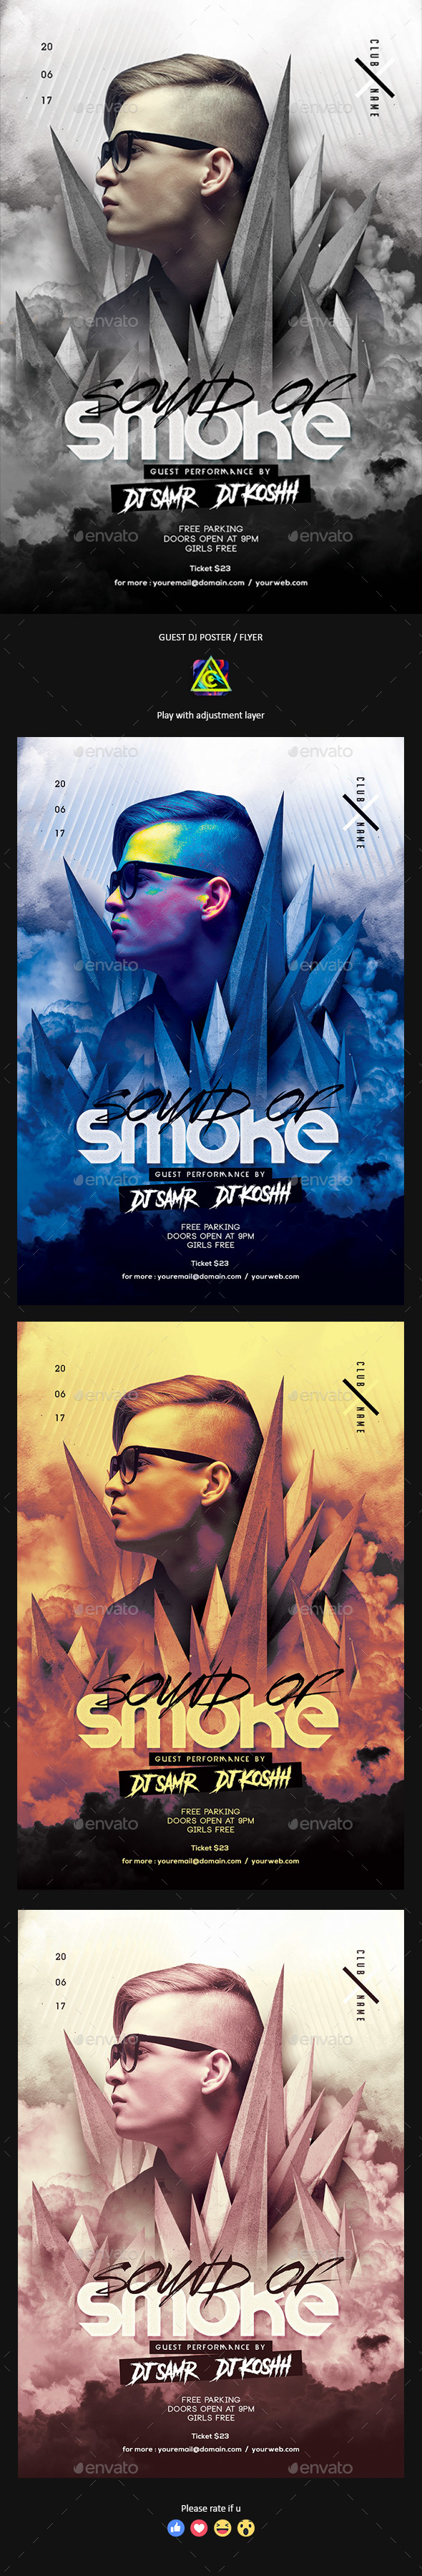 Sound Of Smoke PSD Flyer / Poster Template - Clubs & Parties Events